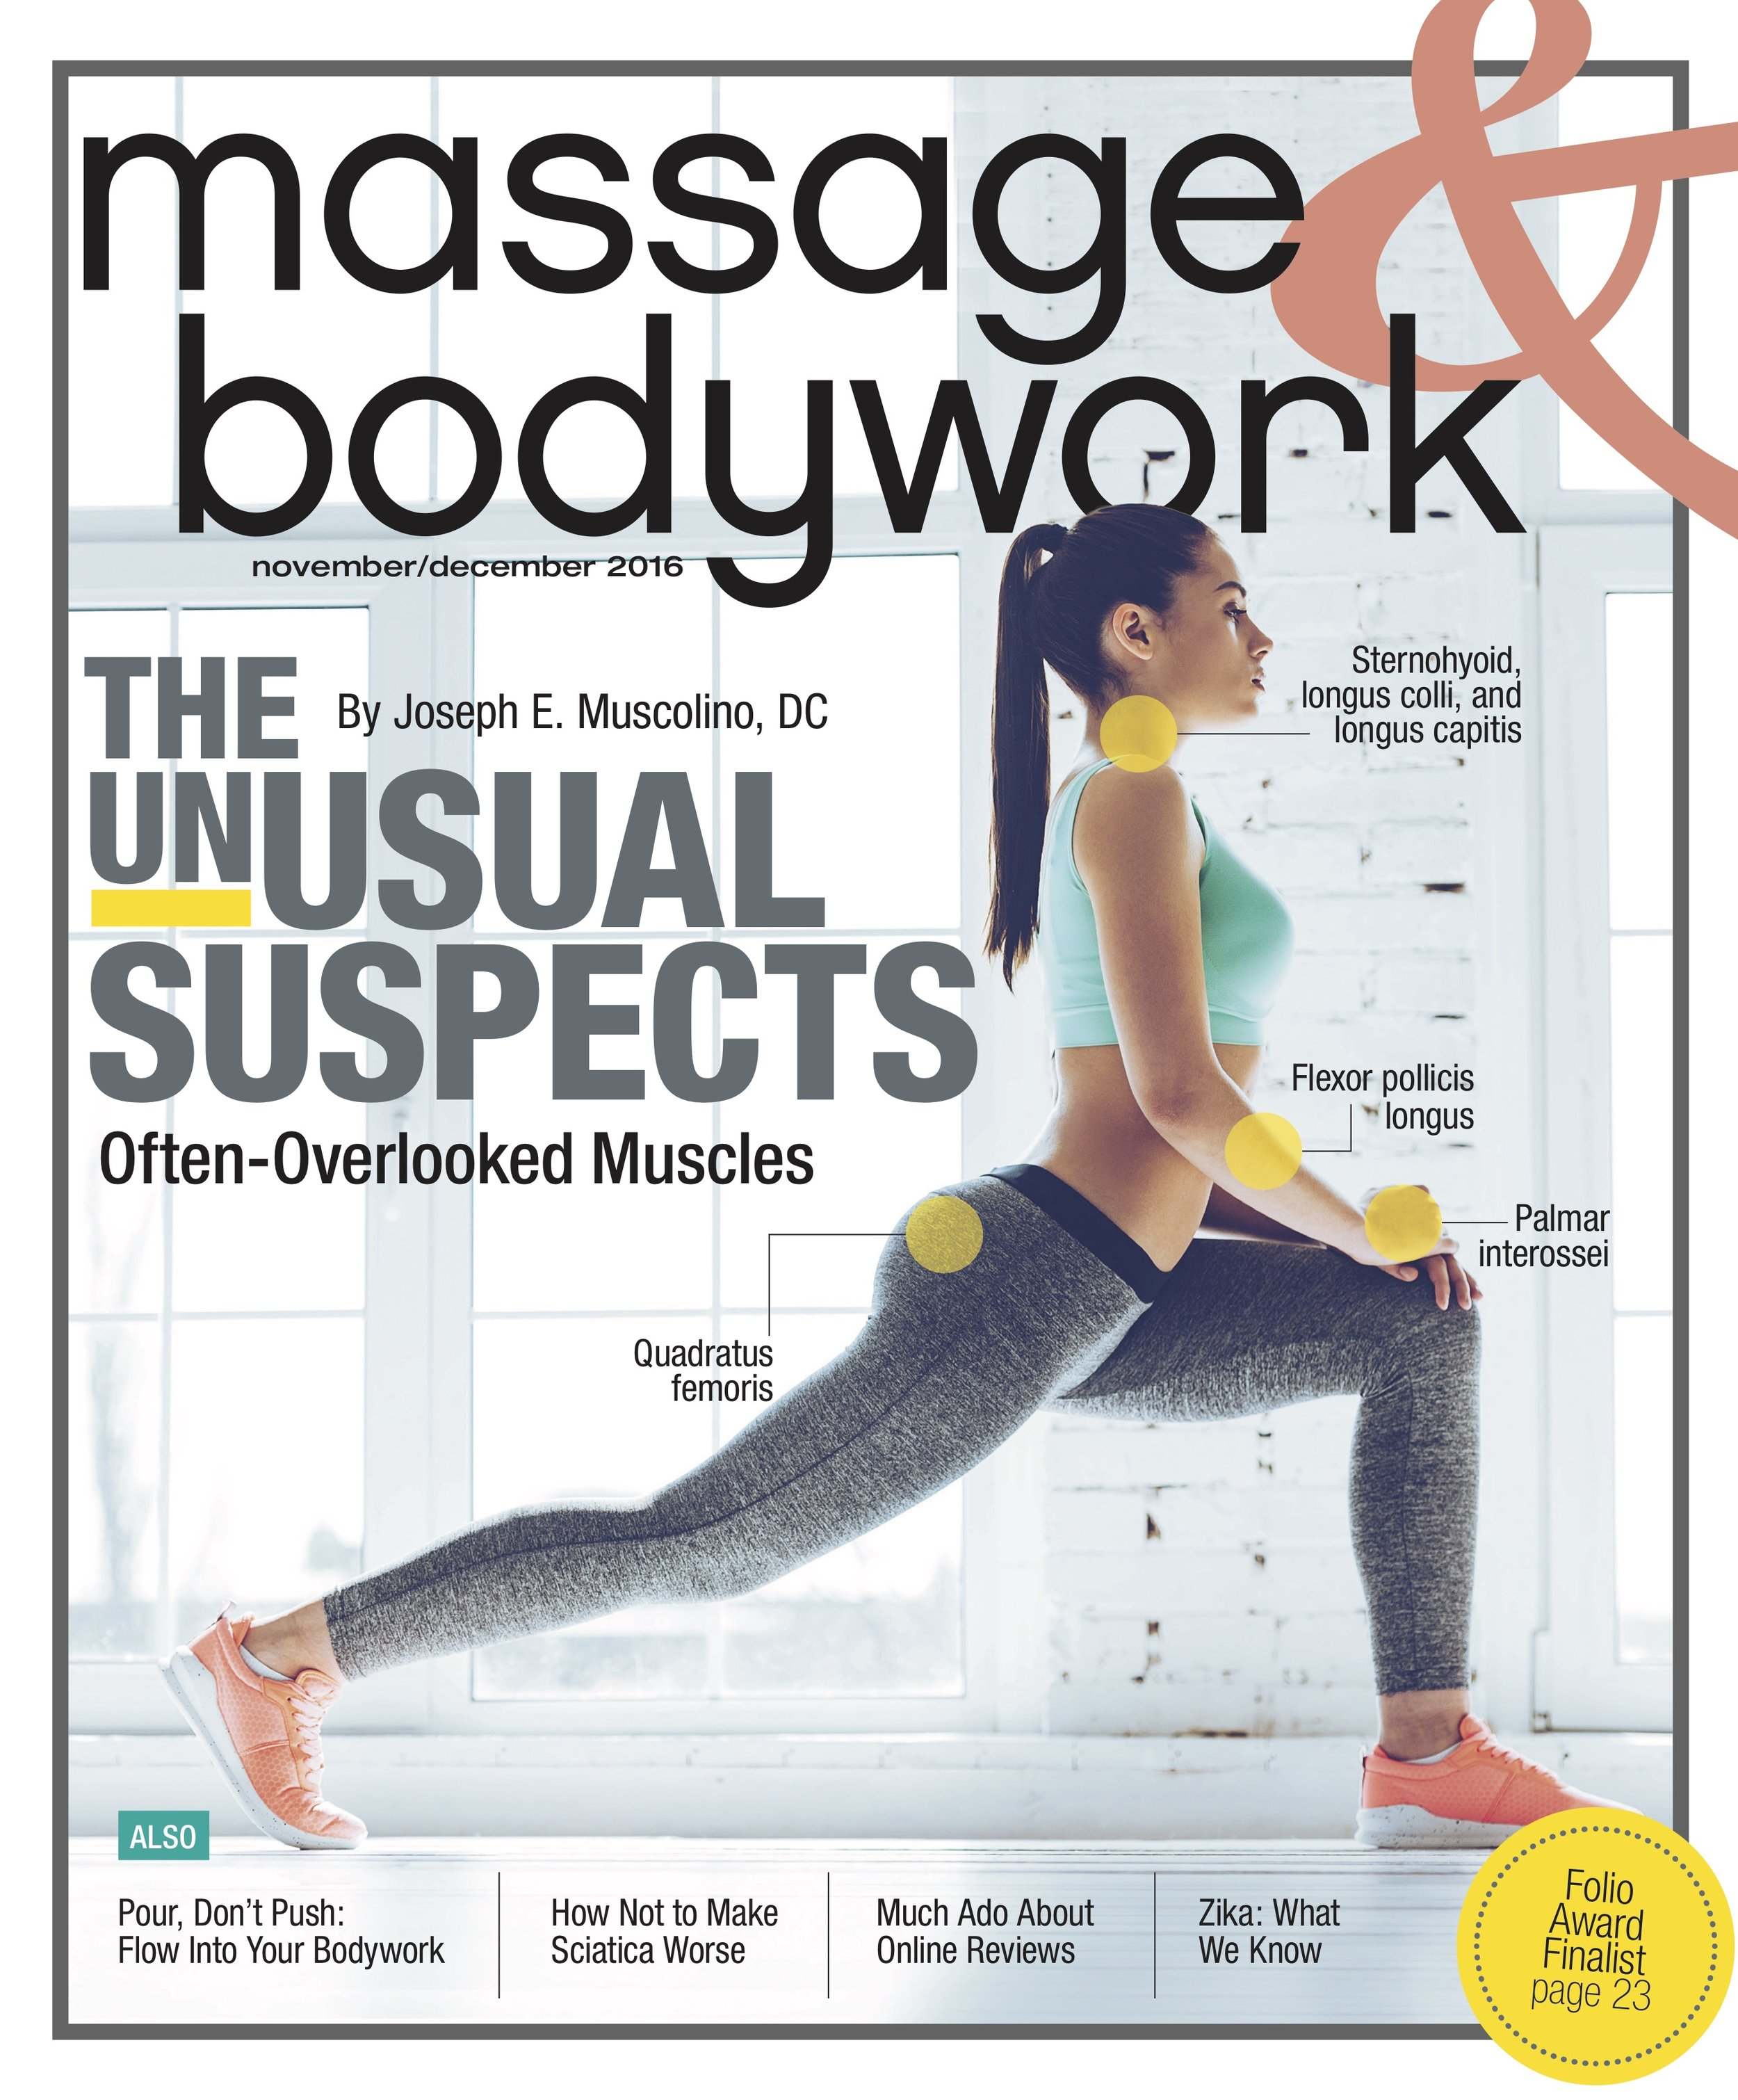 """Pour Don't Push: How to Massage with Greater Depth and Ease""  David M. Lobenstine  Massage & Bodywork  November/December 2016"